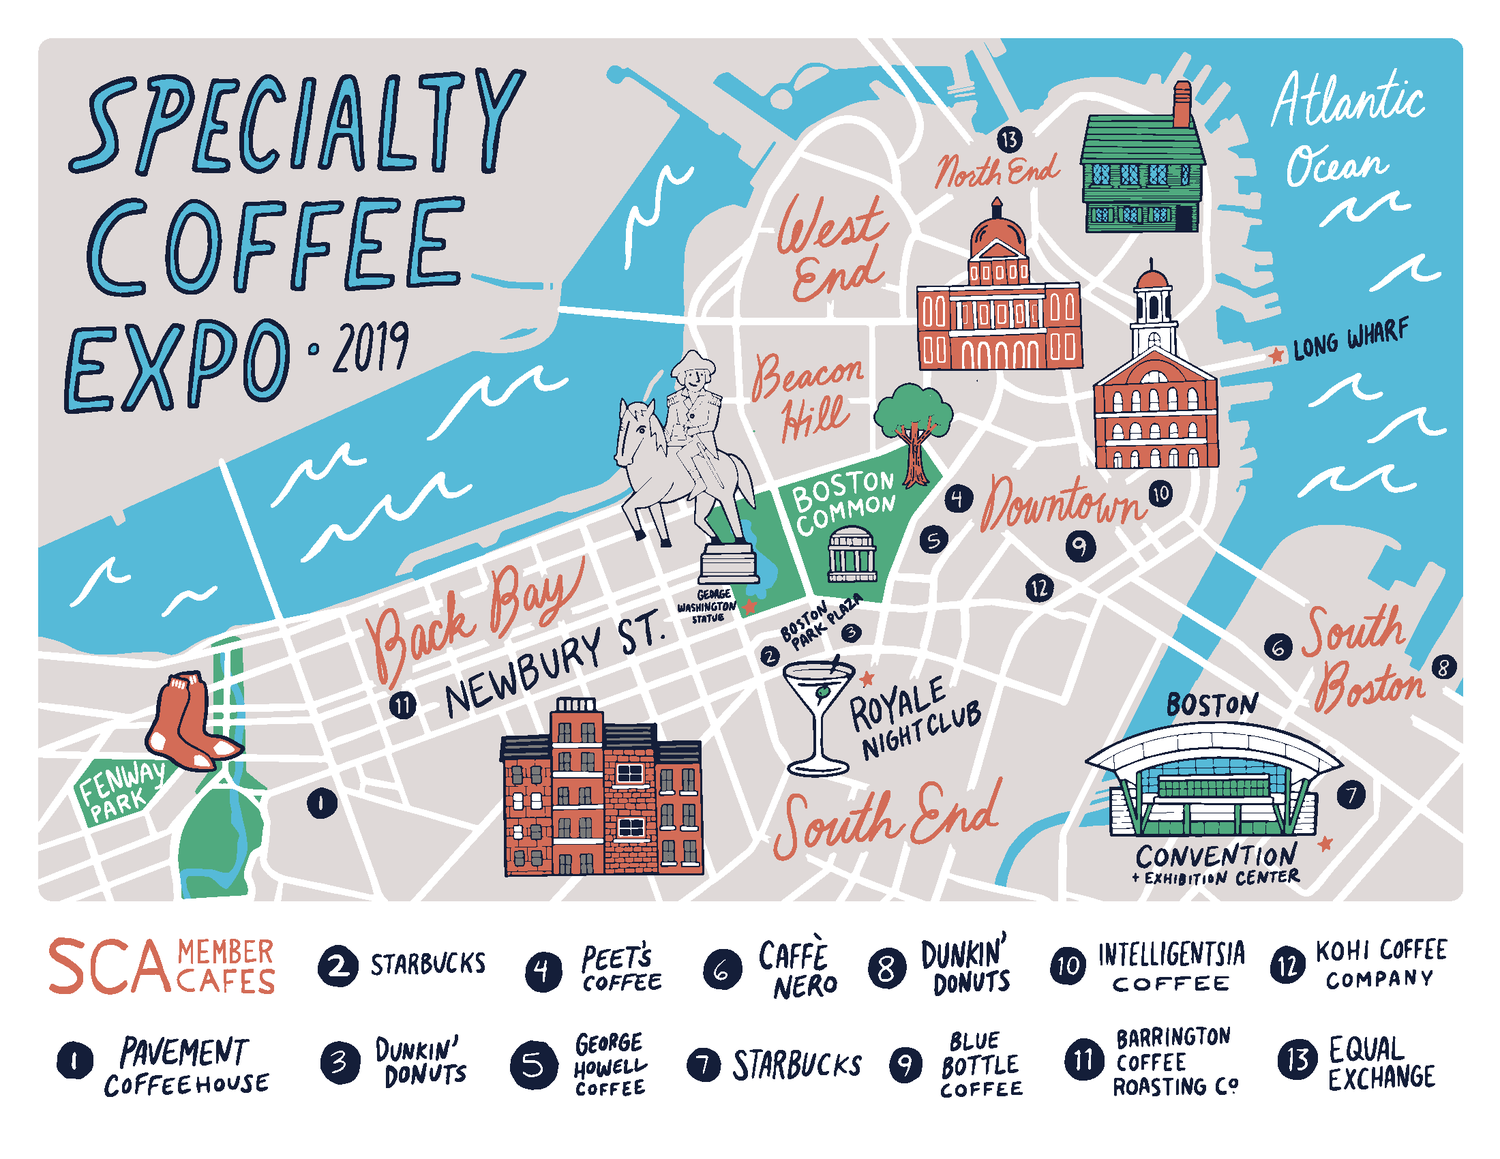 Map of the Day: Boston's Coffee — Specialty Coffee Expo Map Boston on massachusetts map, mass map, charles town map, pennsylvania map, ma map, lexington map, michigan map, u.s. state map, freedom trail map, ny map, usa map, fenway park map, texas map, new england map, phoenix map, mississippi map, america map, philly map, cambridge map, united states map,